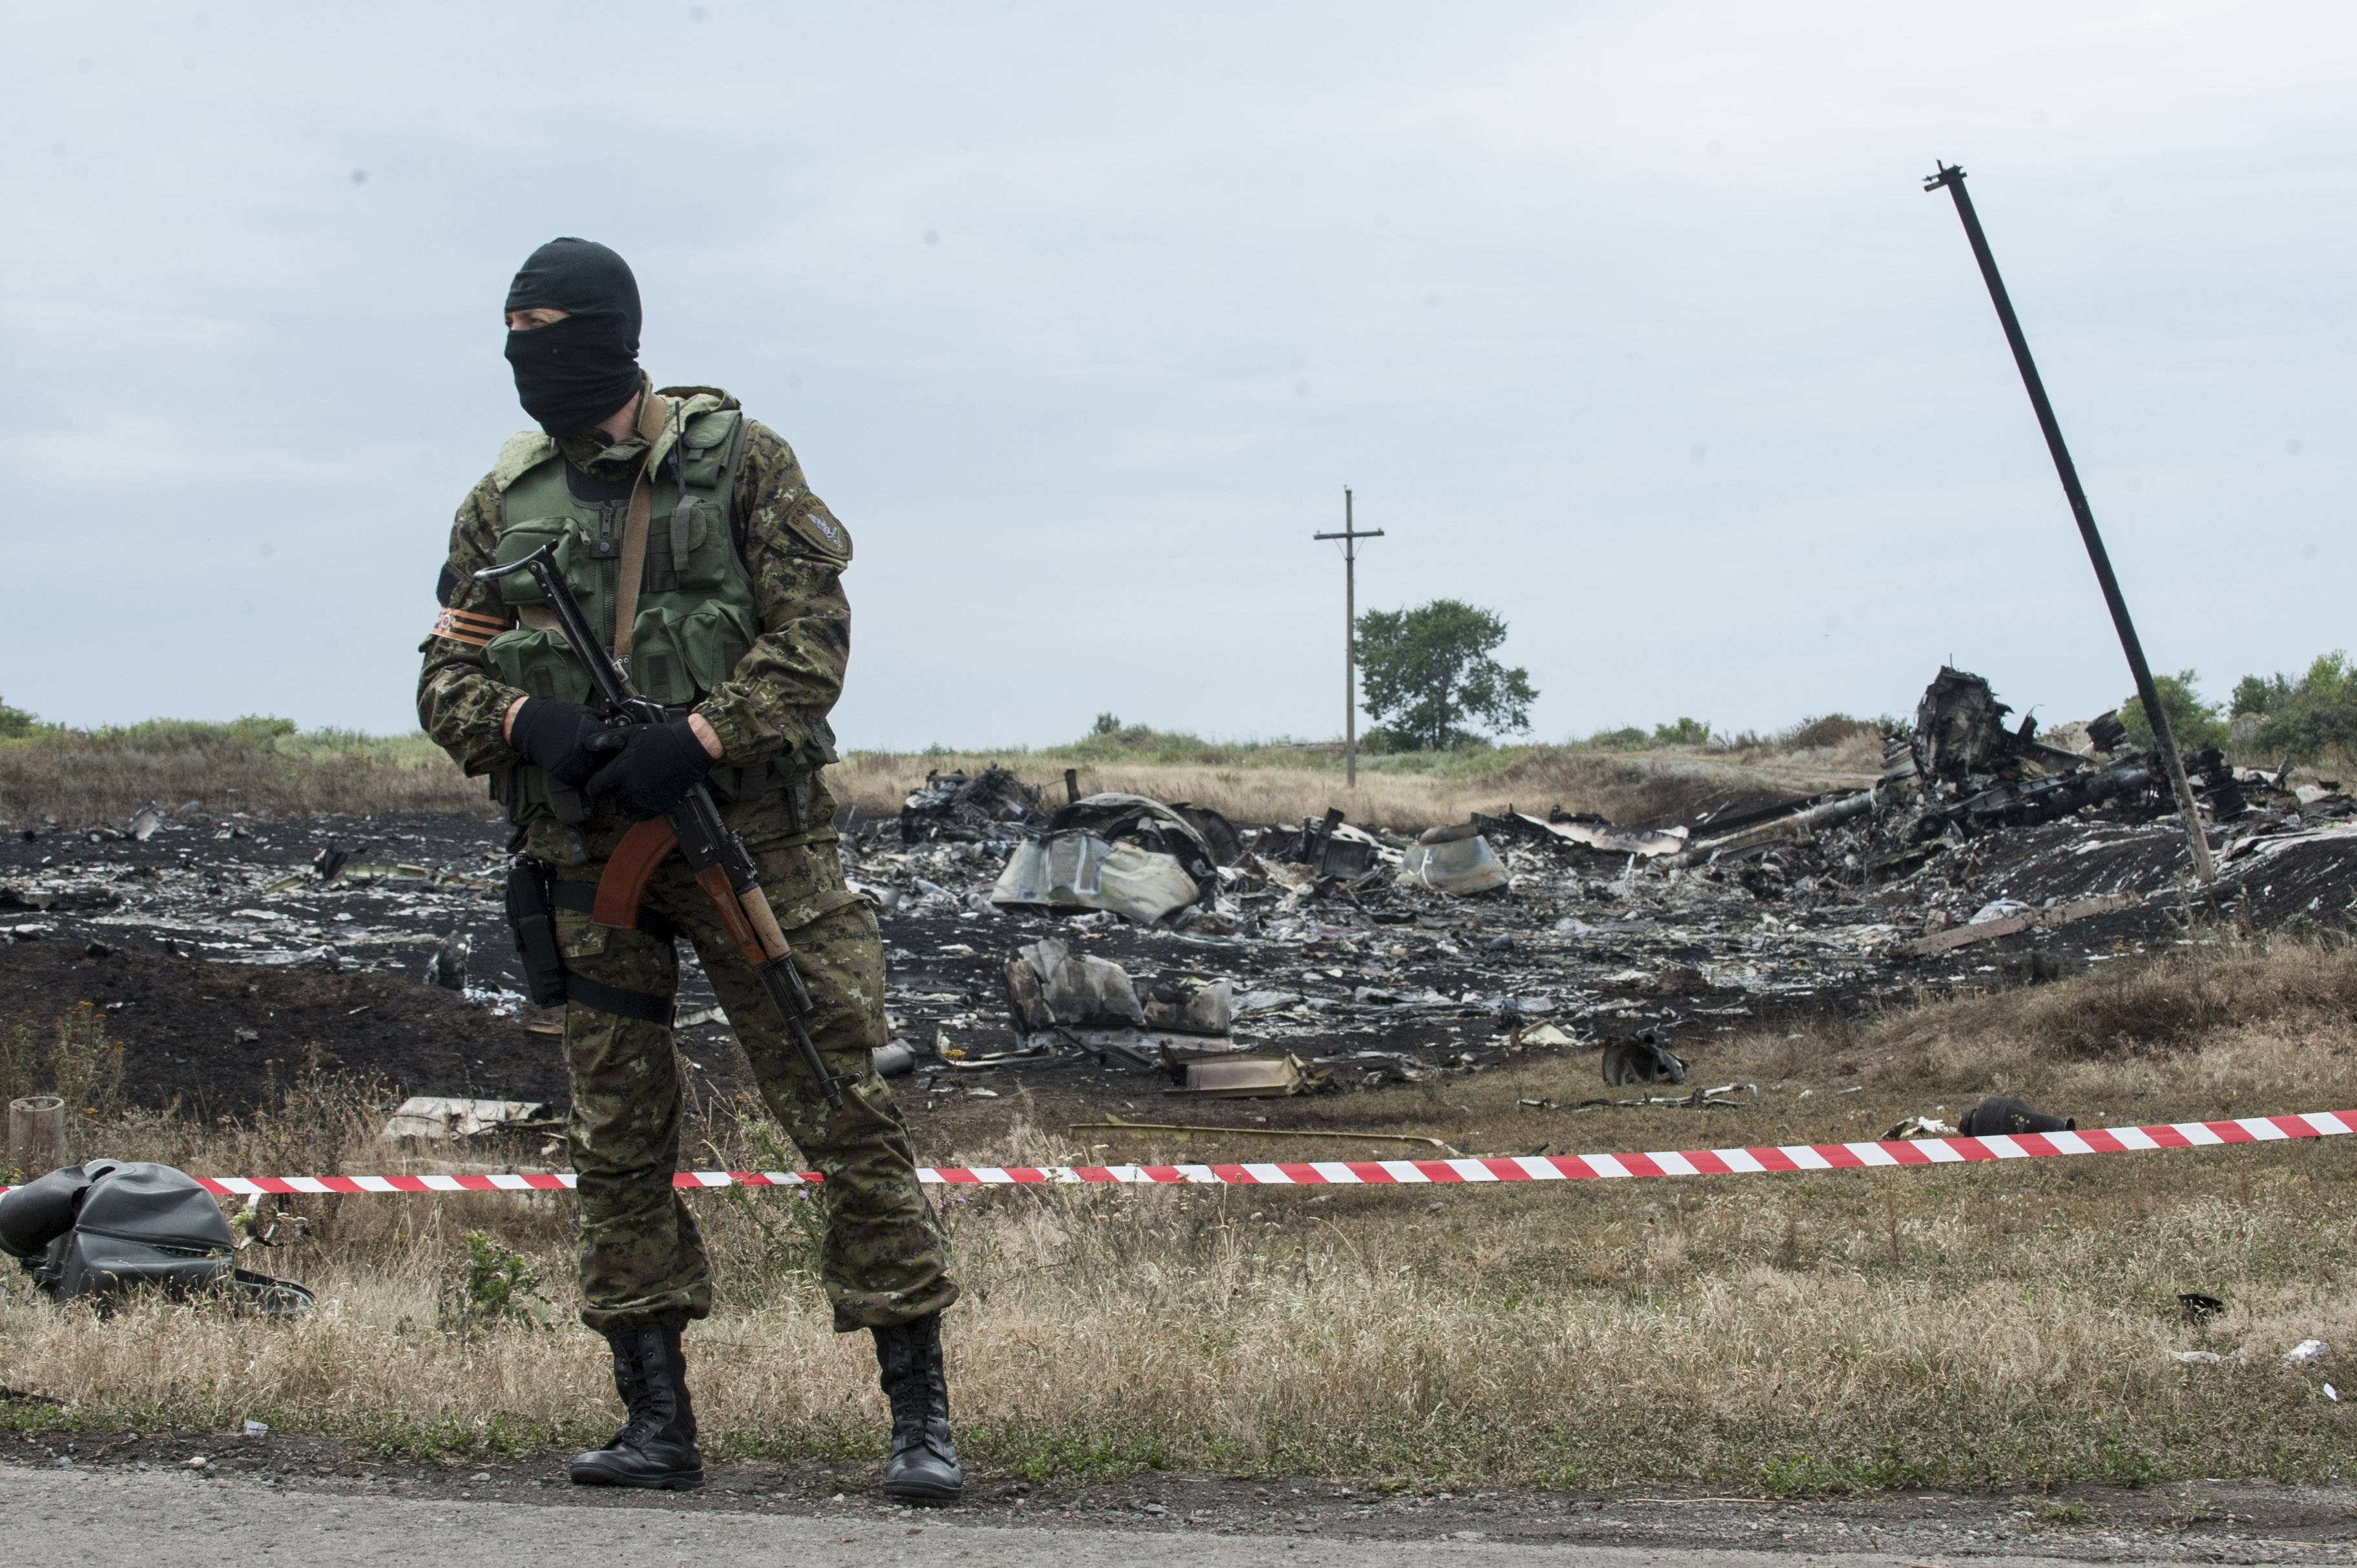 A pro-Russian fighter guards the crash site of a Malaysia Airlines jet near the village of Hrabove, eastern Ukraine, Saturday, July 19, 2014. Ukraine accused Russia on Saturday of helping separatist rebels destroy evidence at the crash site of a Malaysia Airlines plane shot down in rebel-held territory -- a charge the rebels denied.